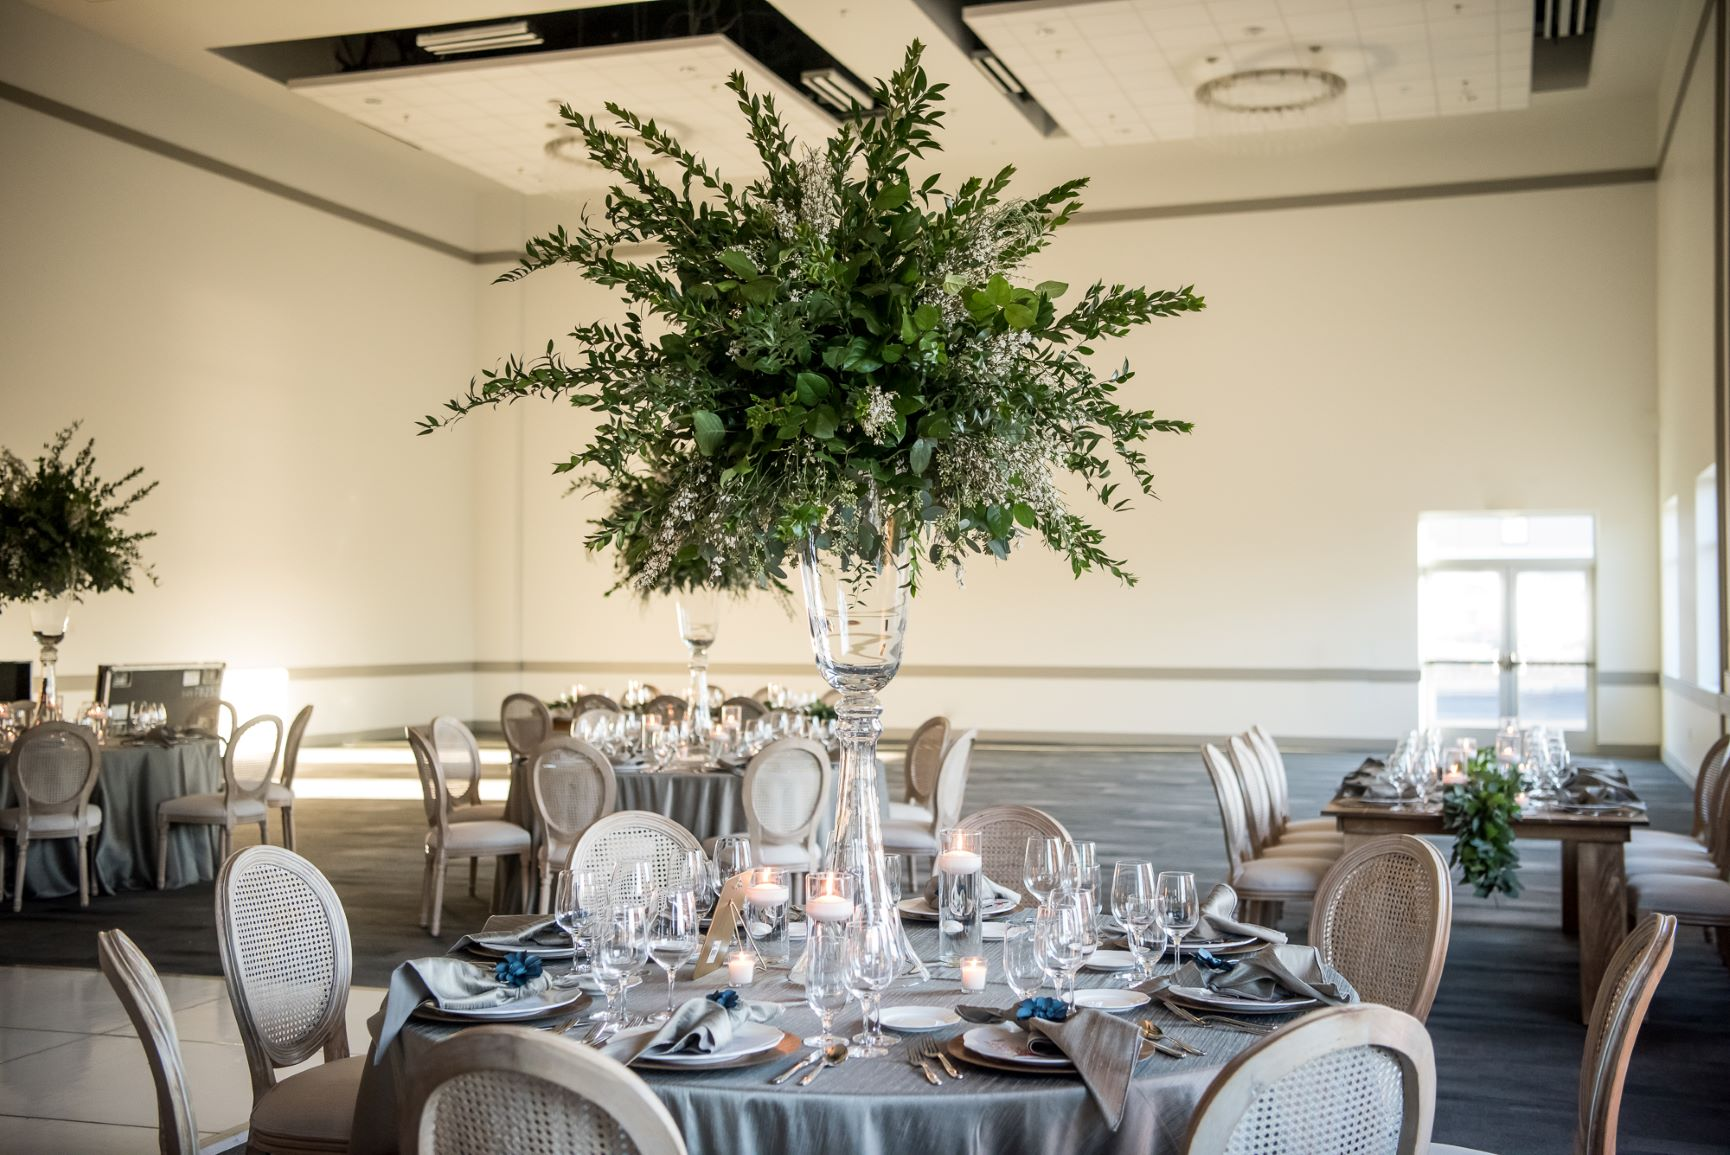 Centerpiece greenery